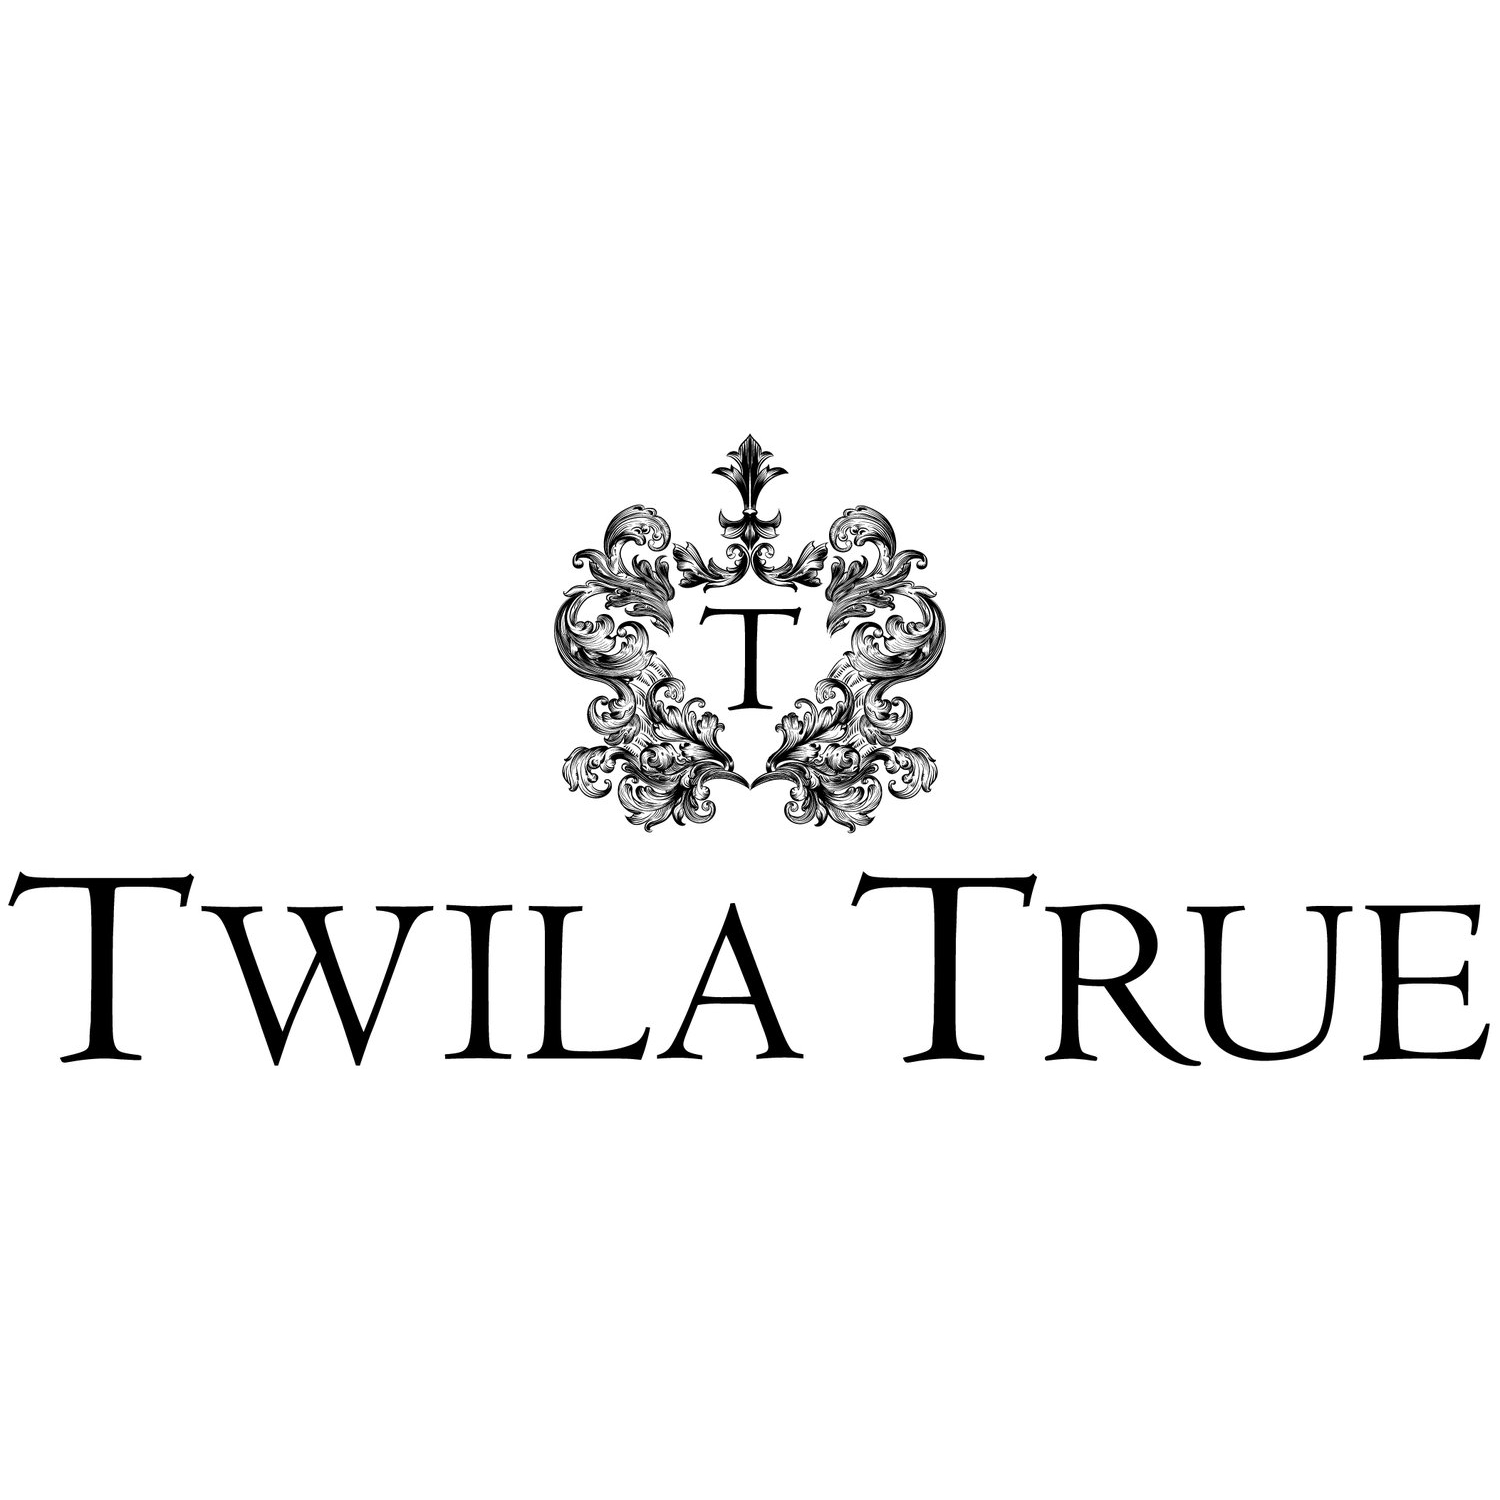 Twila True - Newport Beach, CA 92663 - (949)675-1701 | ShowMeLocal.com